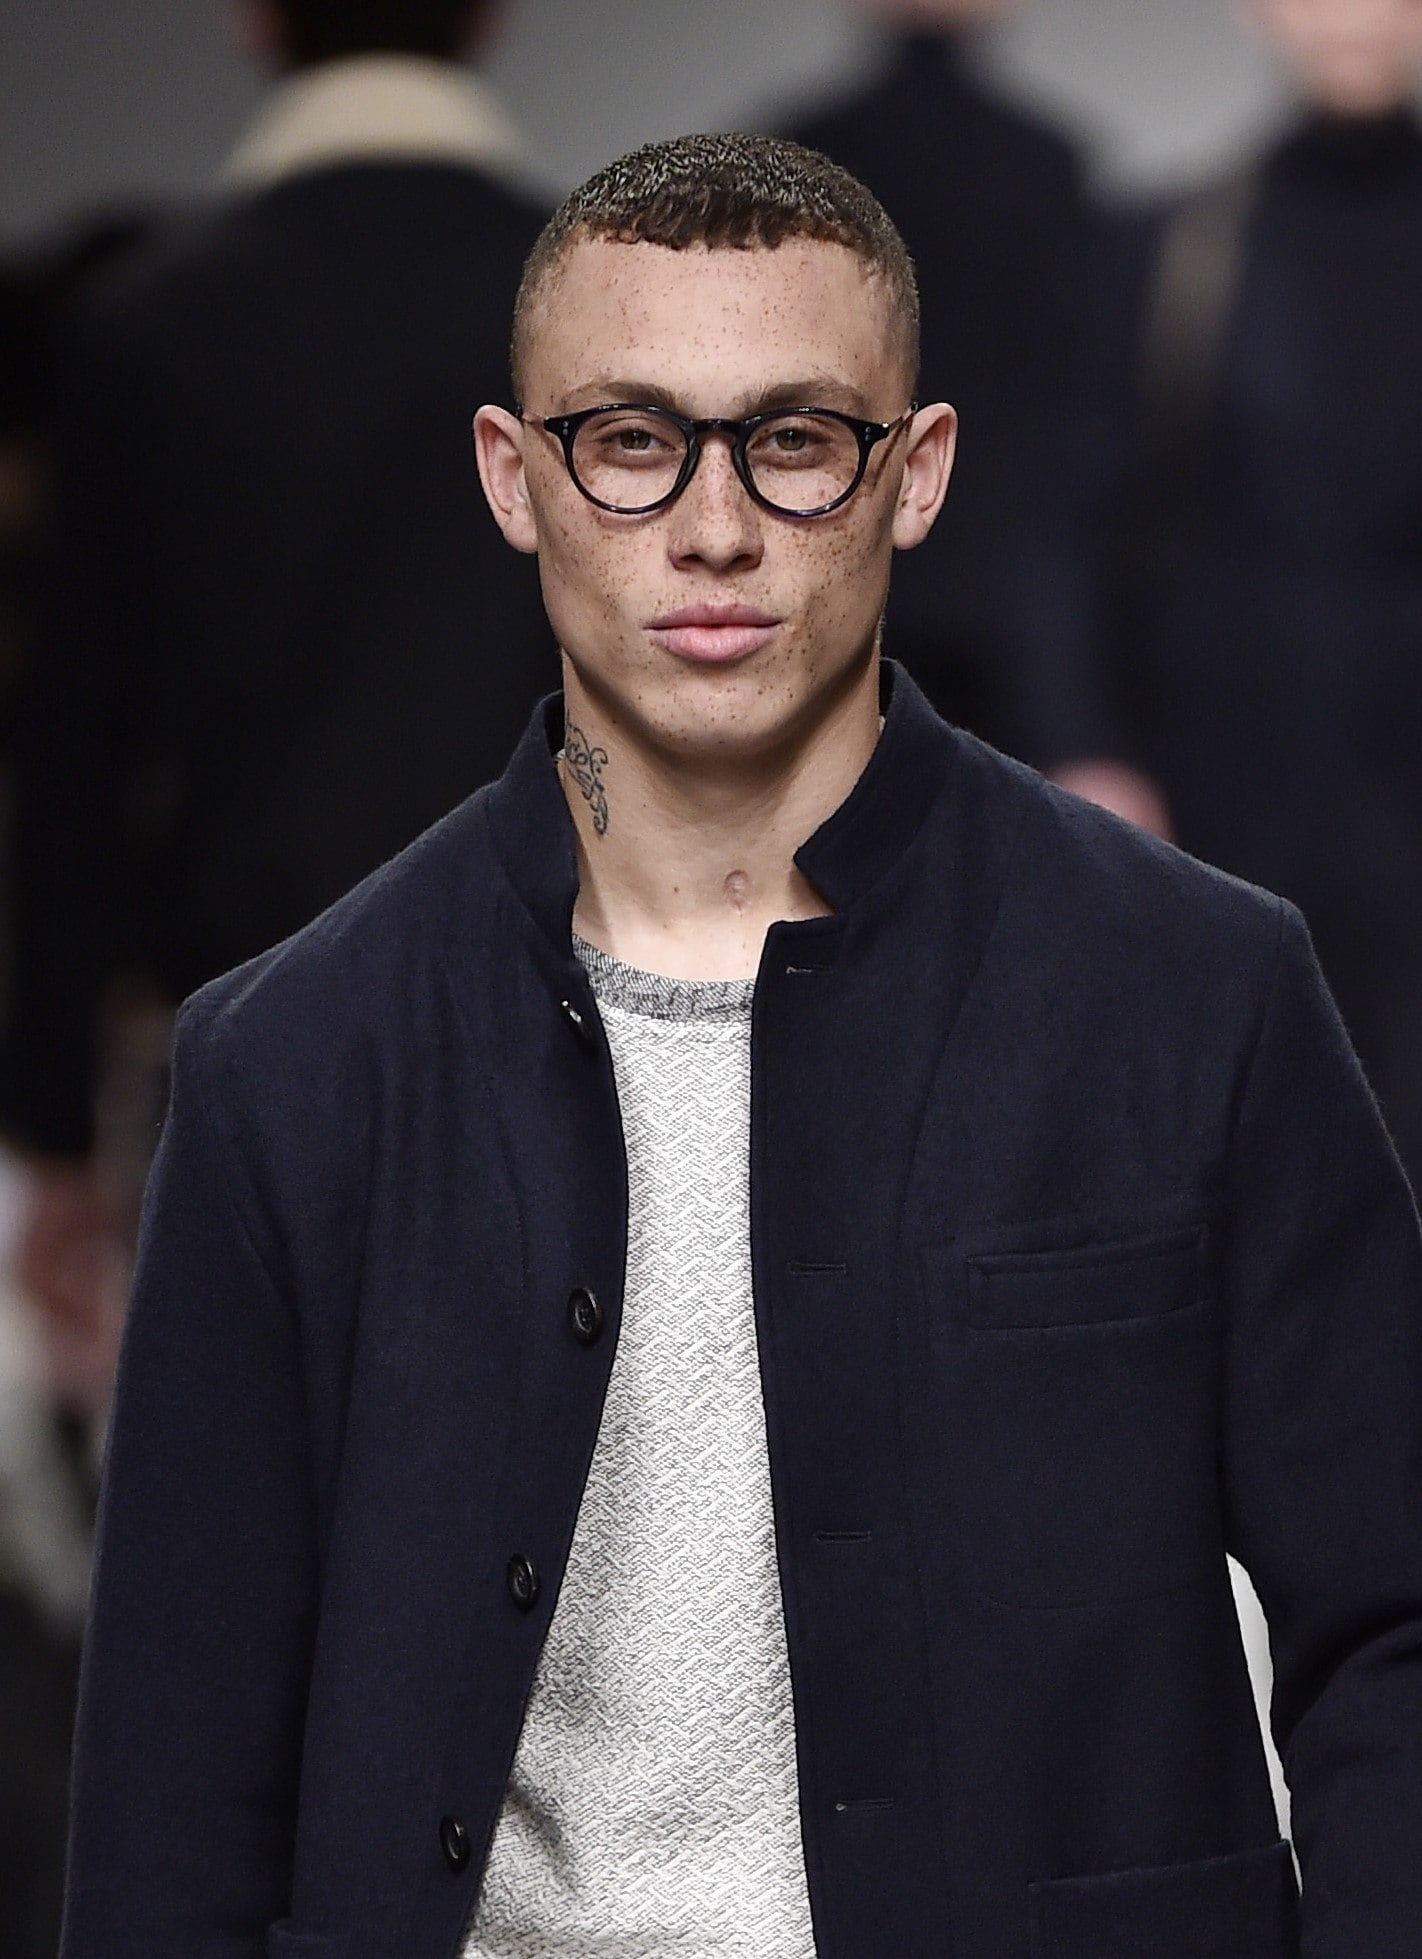 Crop haircut: Runway shot of a male model with a short crop haircut, wearing a navy jacket and glasses